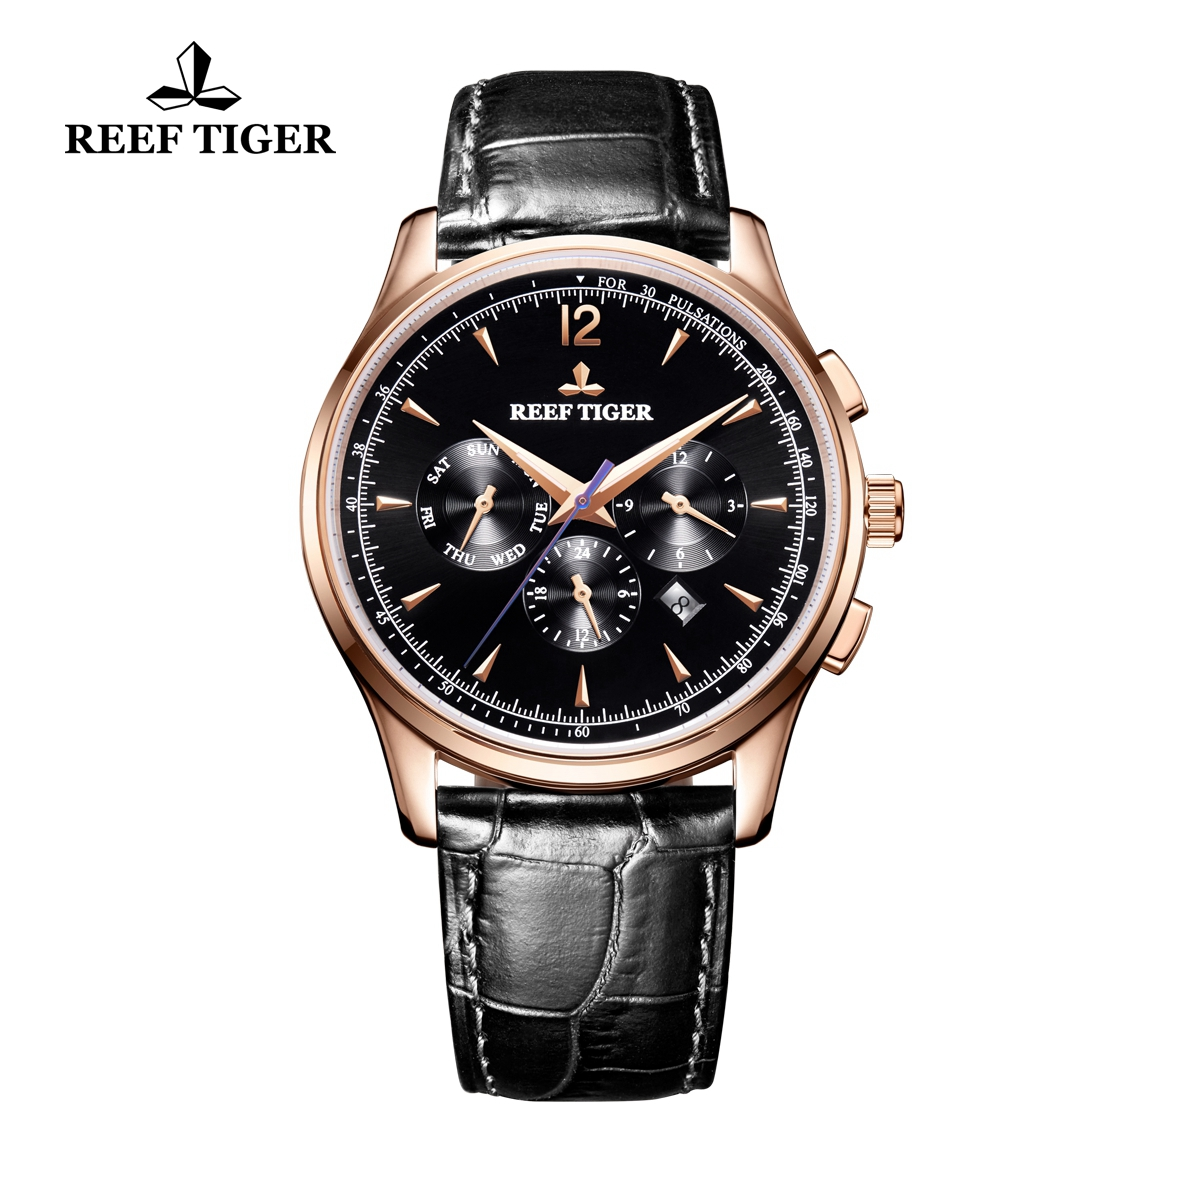 Reef Tiger Seattle Museum Dress Automatic Watch Rose Gold Black Dial Black Leather Strap RGA1654-PBB